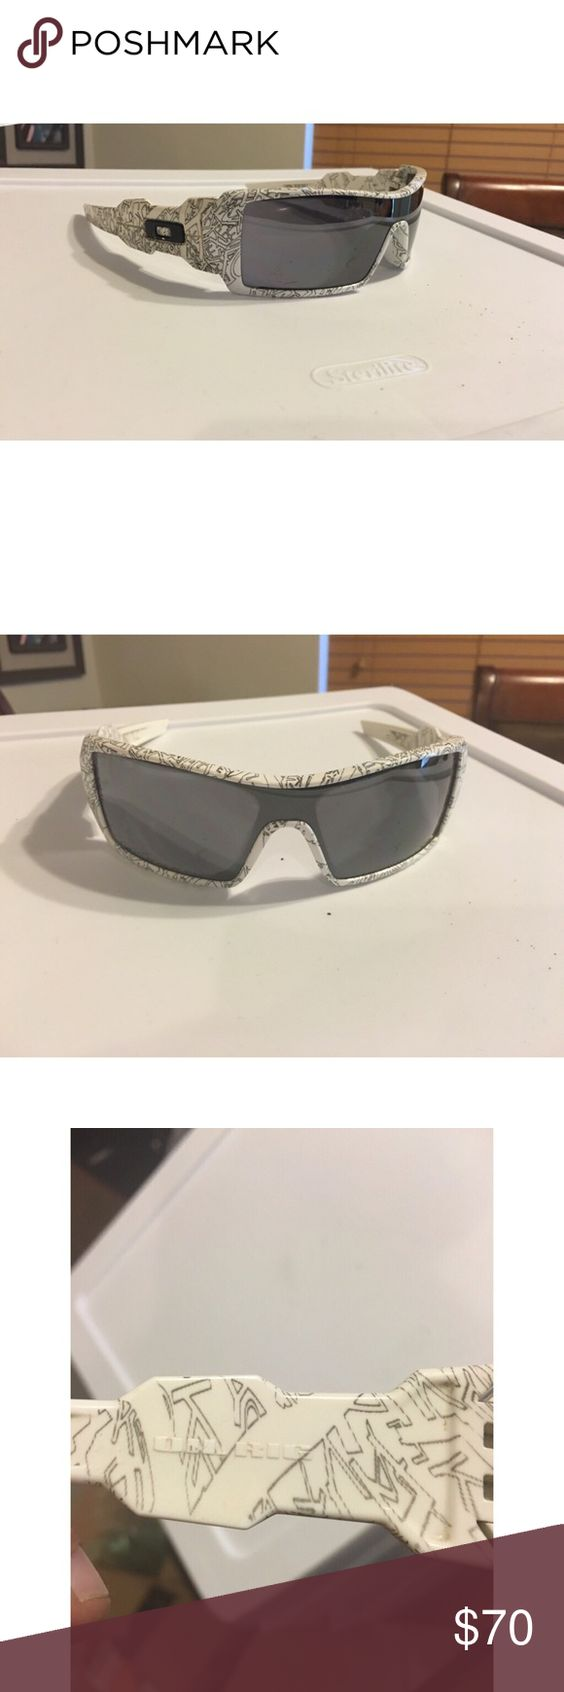 oakley oil rig sunglasses accessories  ??oakley oil rig sunglasses? white & black oakley oil rig sunglasses, used